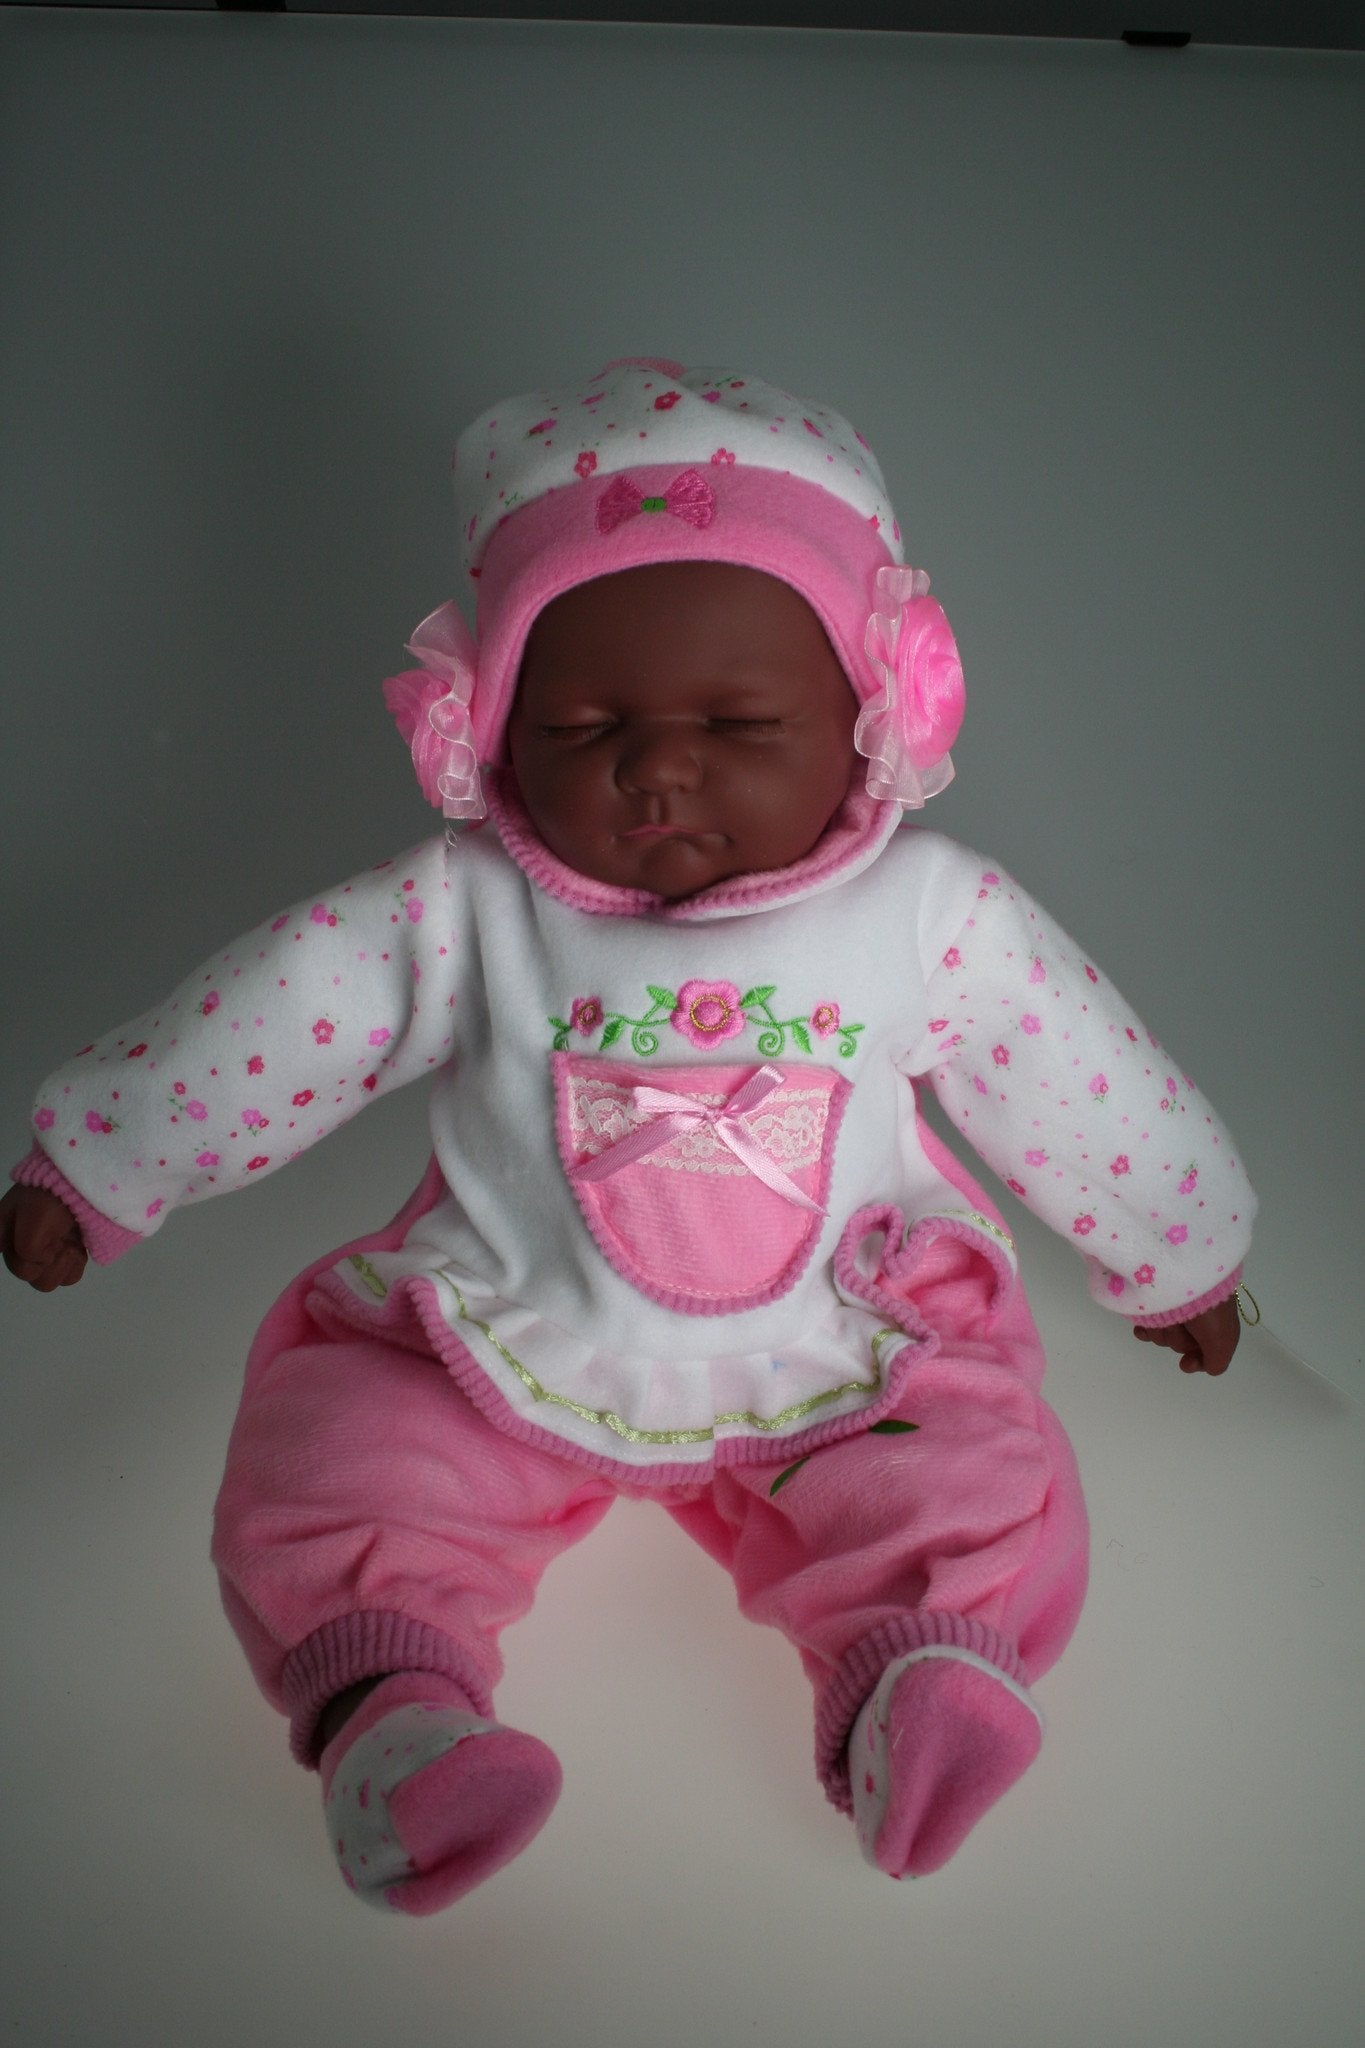 HA316 - Sleeping Baby Doll: Kimberley - Tamarr Imports Innovative Giftware Pty Ltd